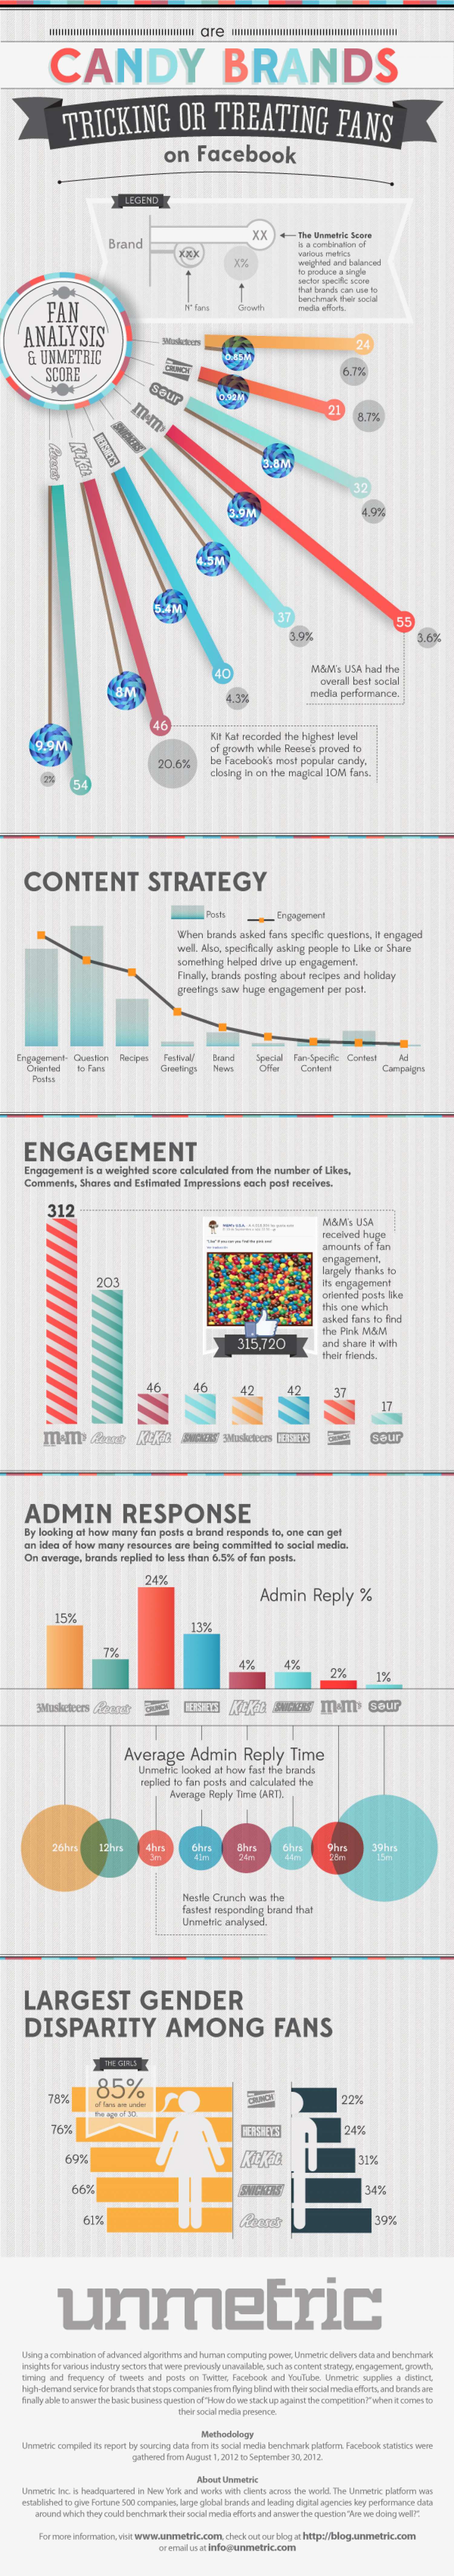 Candy Brands Fans on Facebook Infographic